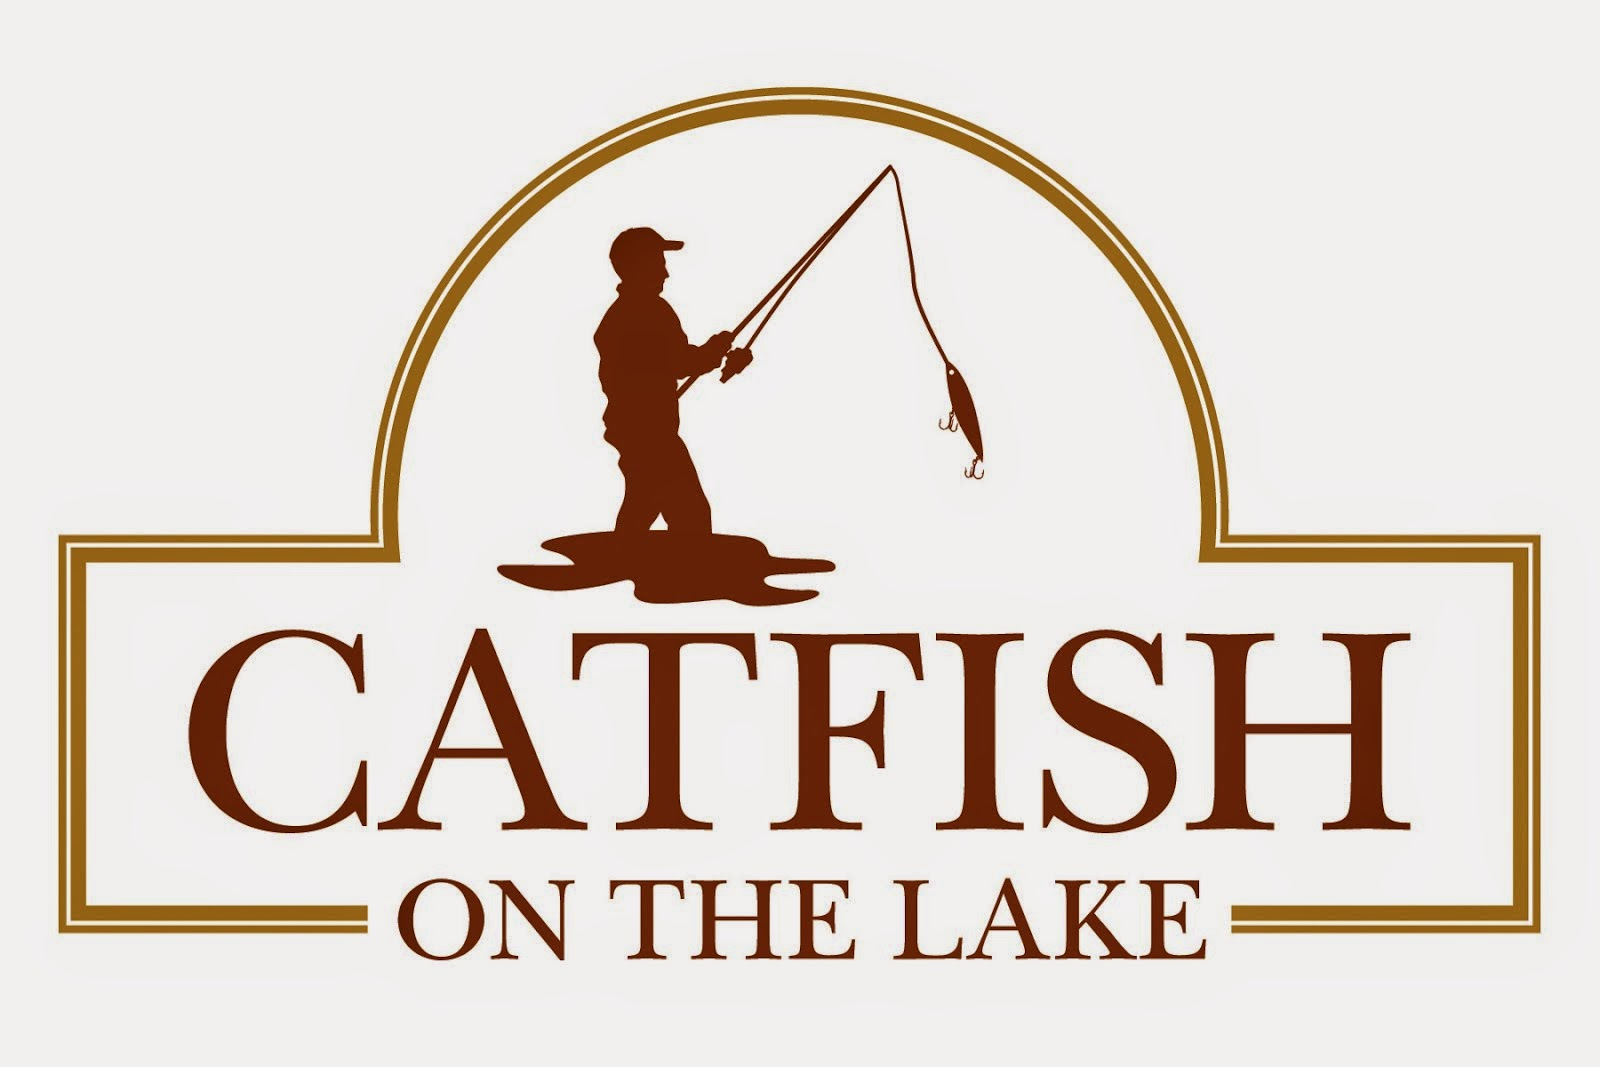 Fishing Instruction By Catfish On The Lake